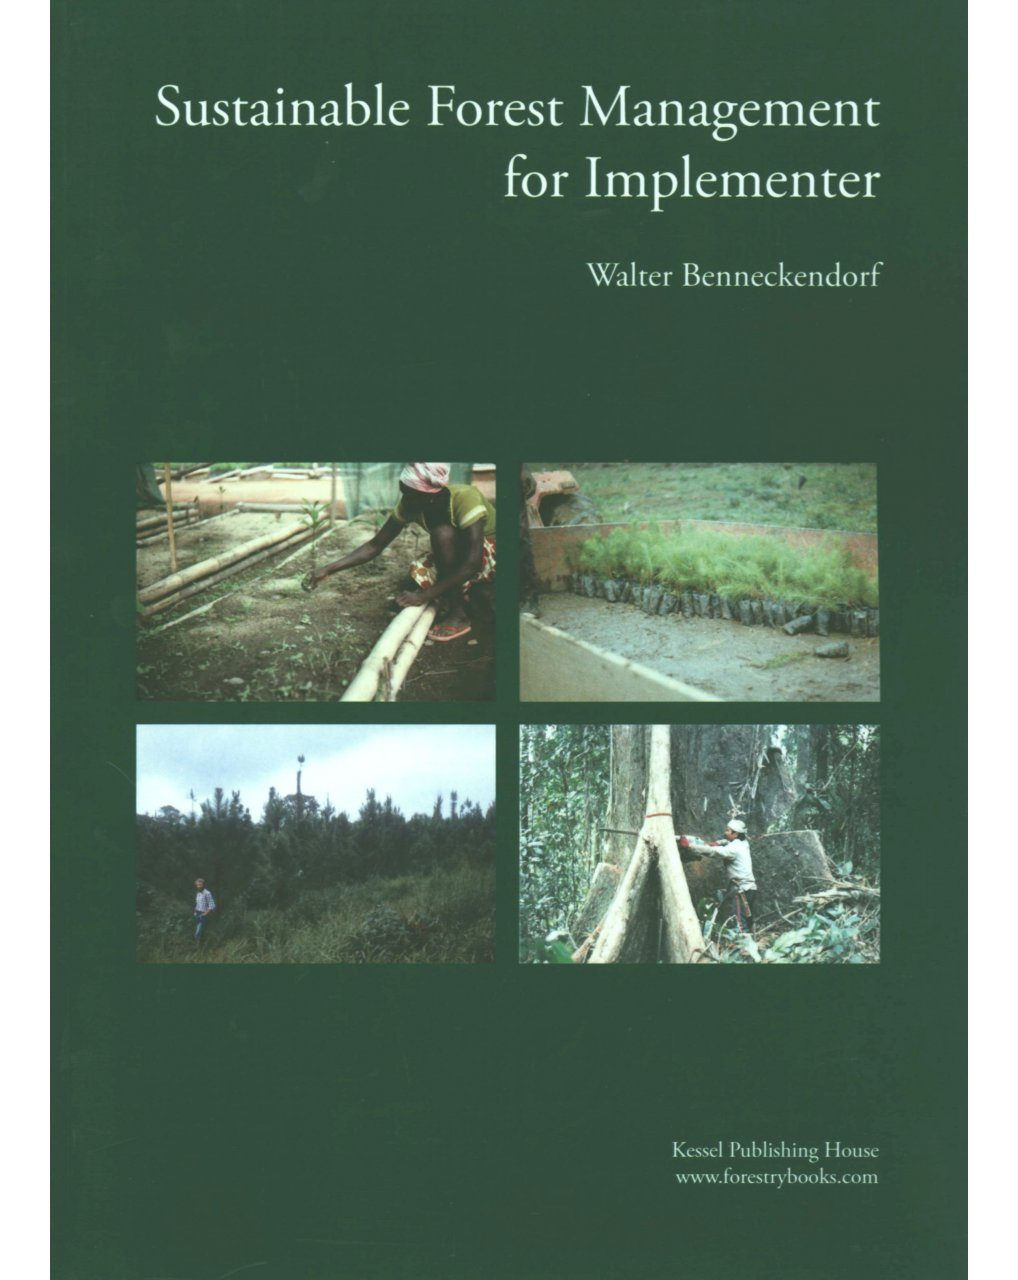 Sustainable Forest Management for Implementer